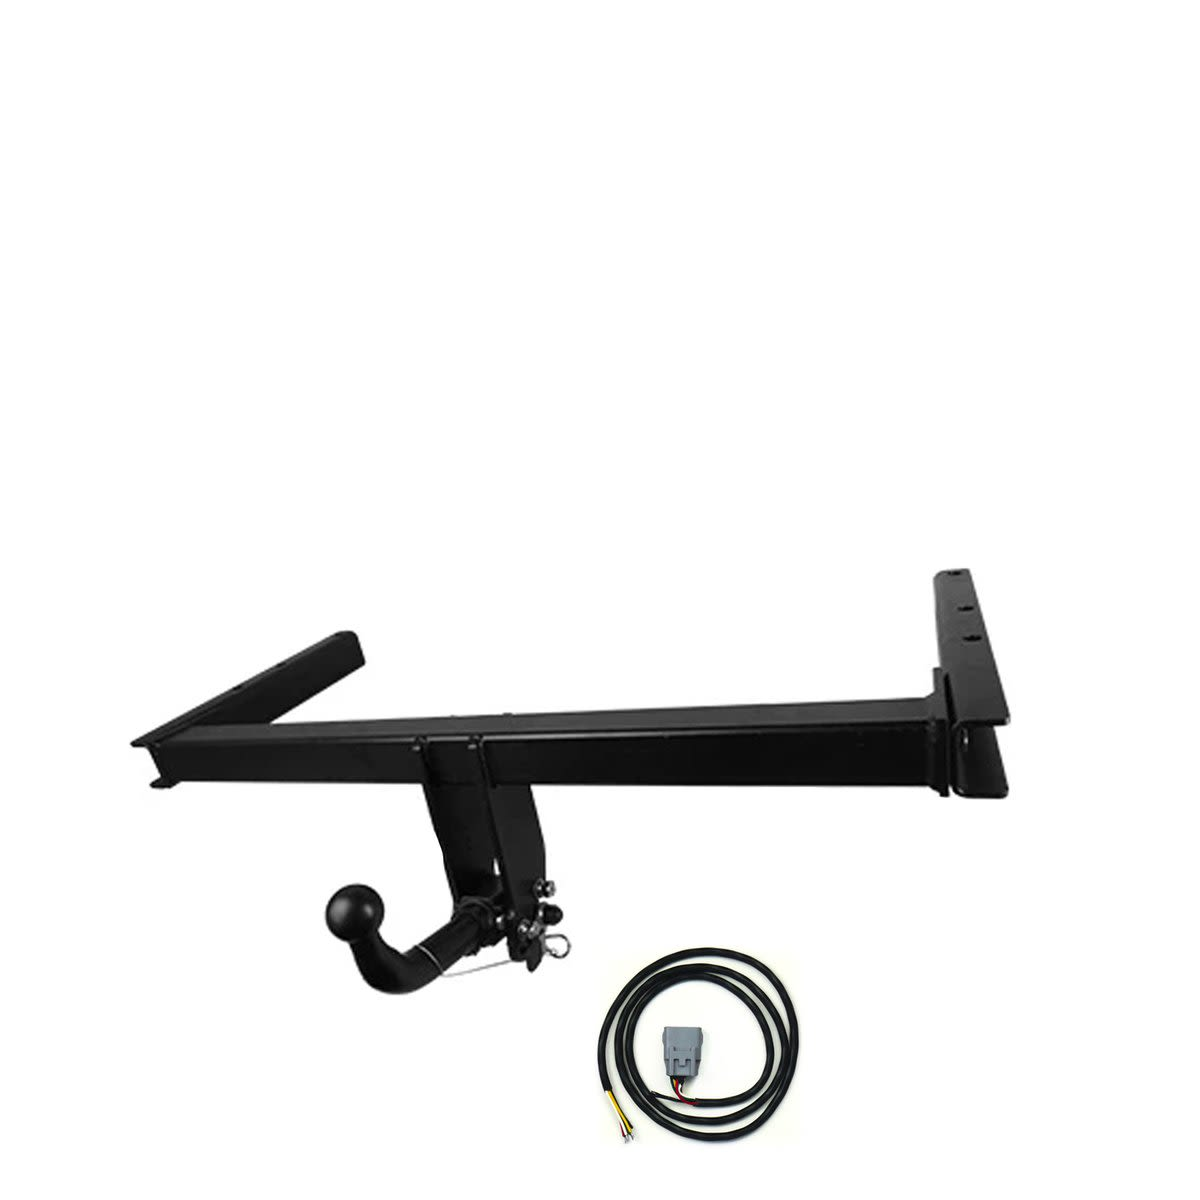 TAG Towbars European Style Tongue to suit MERCEDES-BENZ E-CLASS (07/2009 - 0)